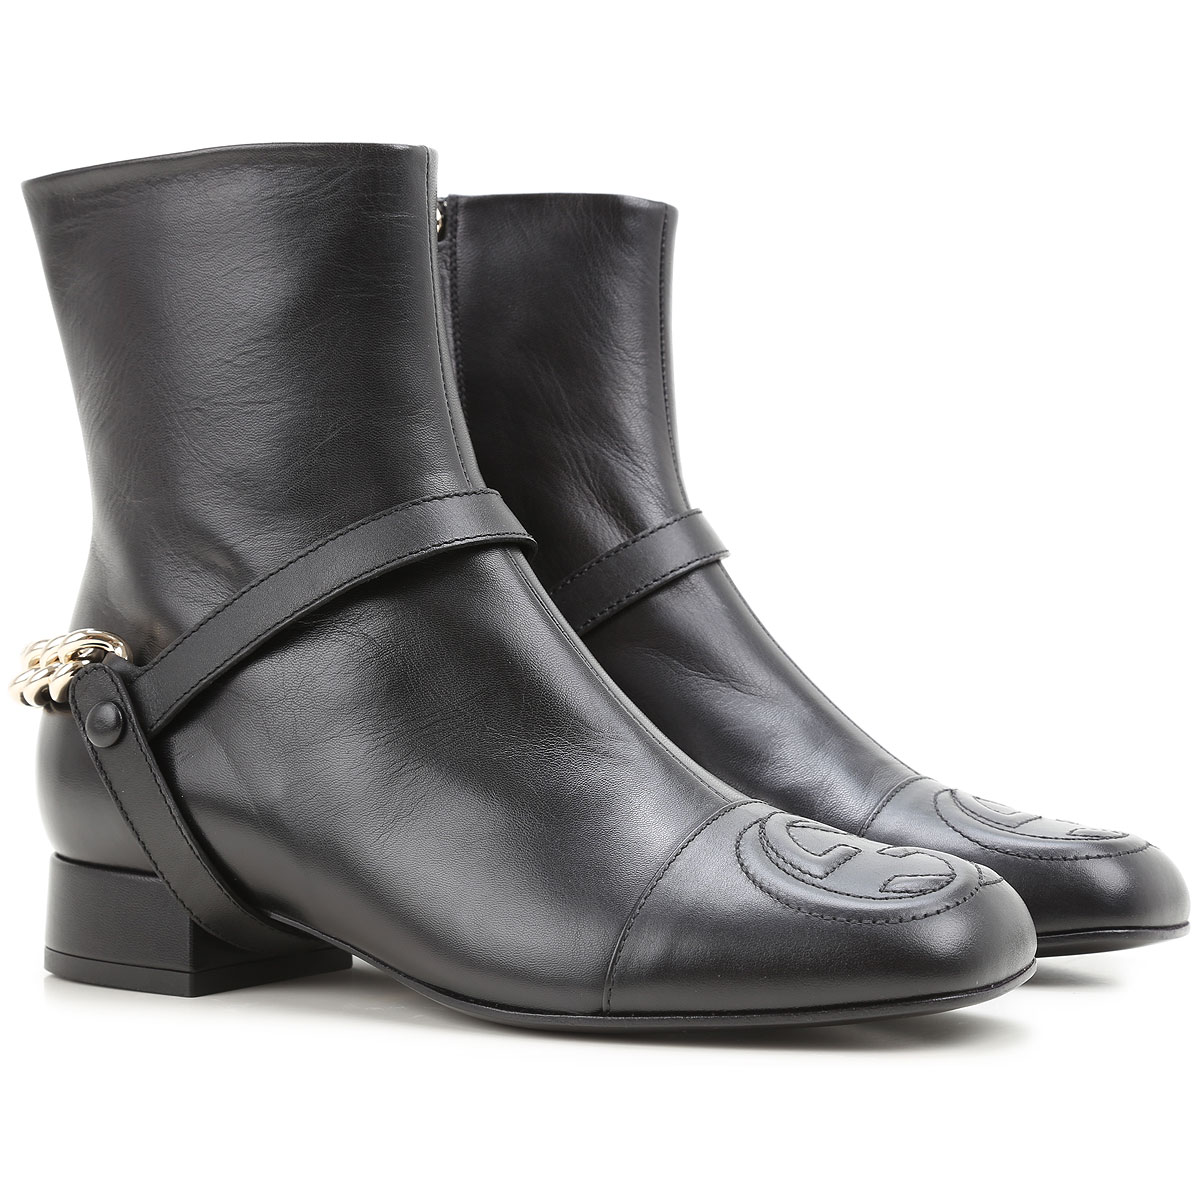 368acb69eeb Gucci. Shoes for Women